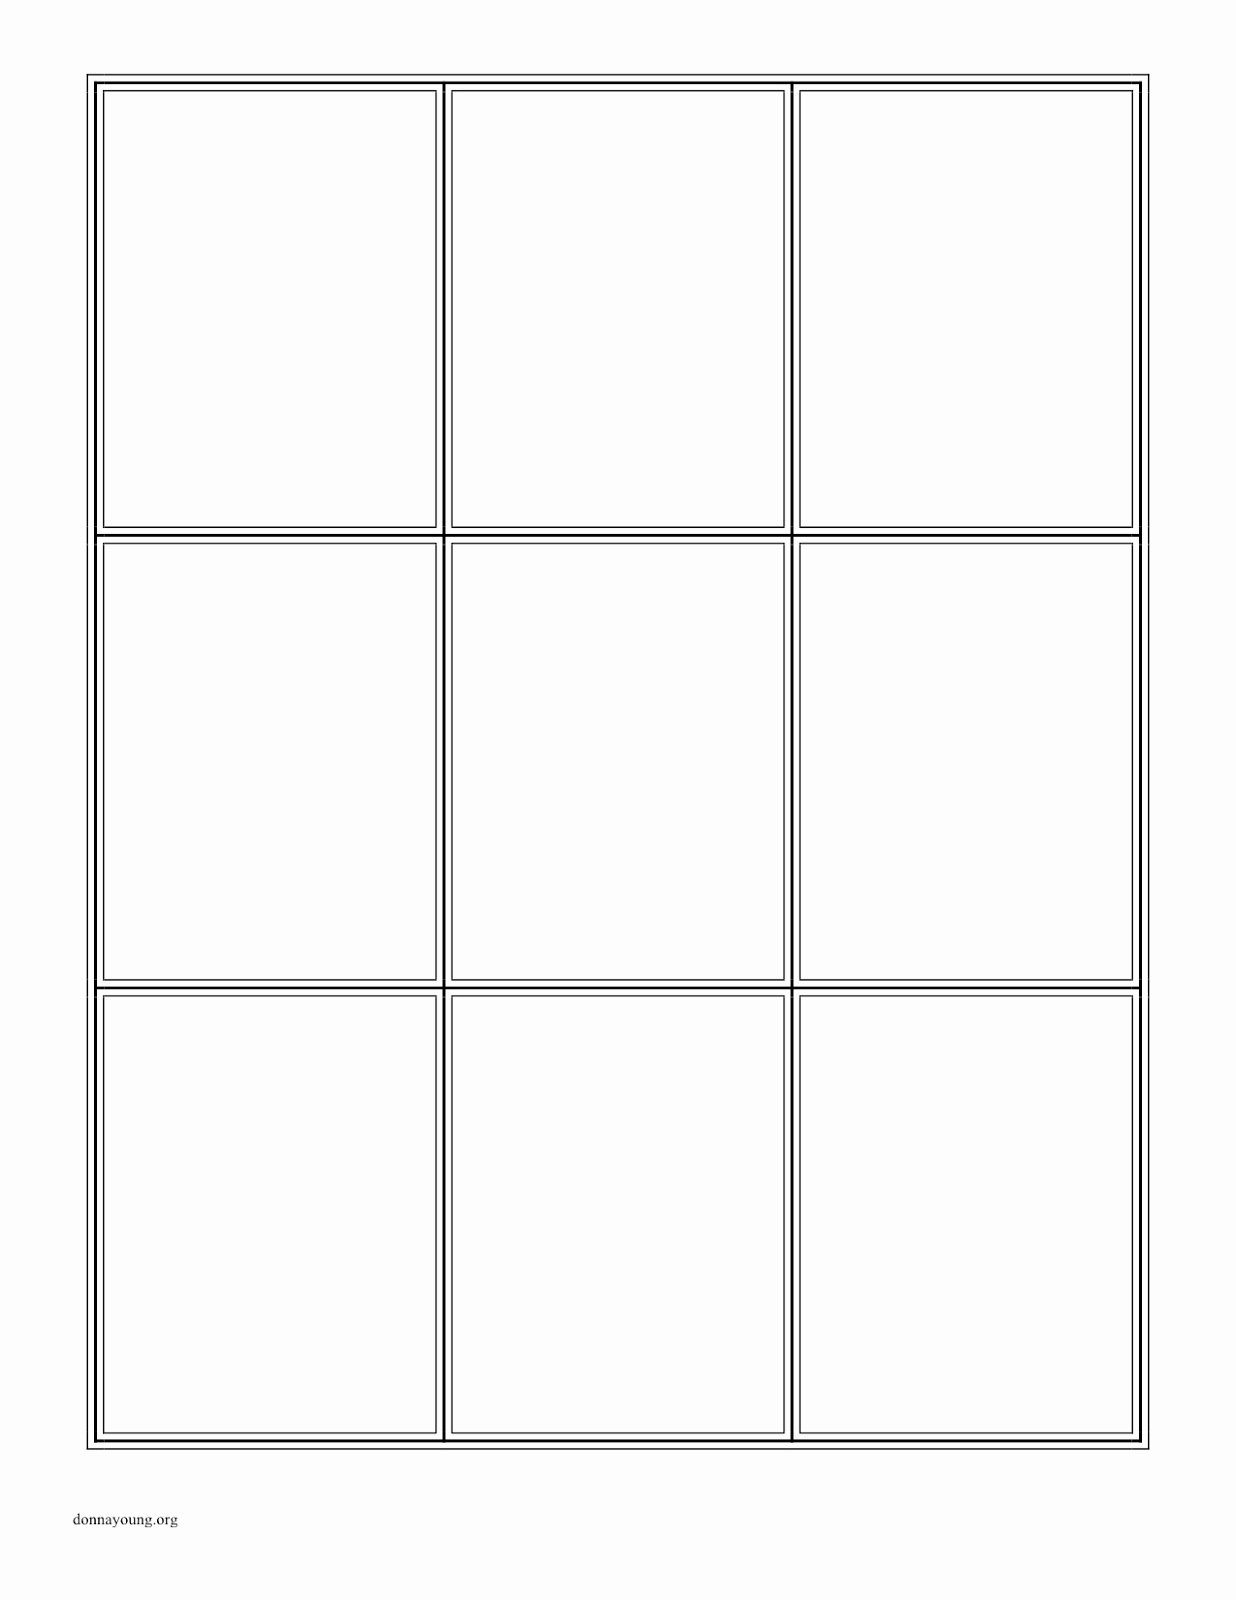 Blank Game Card Template New Sticky Notes and Notebooks Sports All Learners